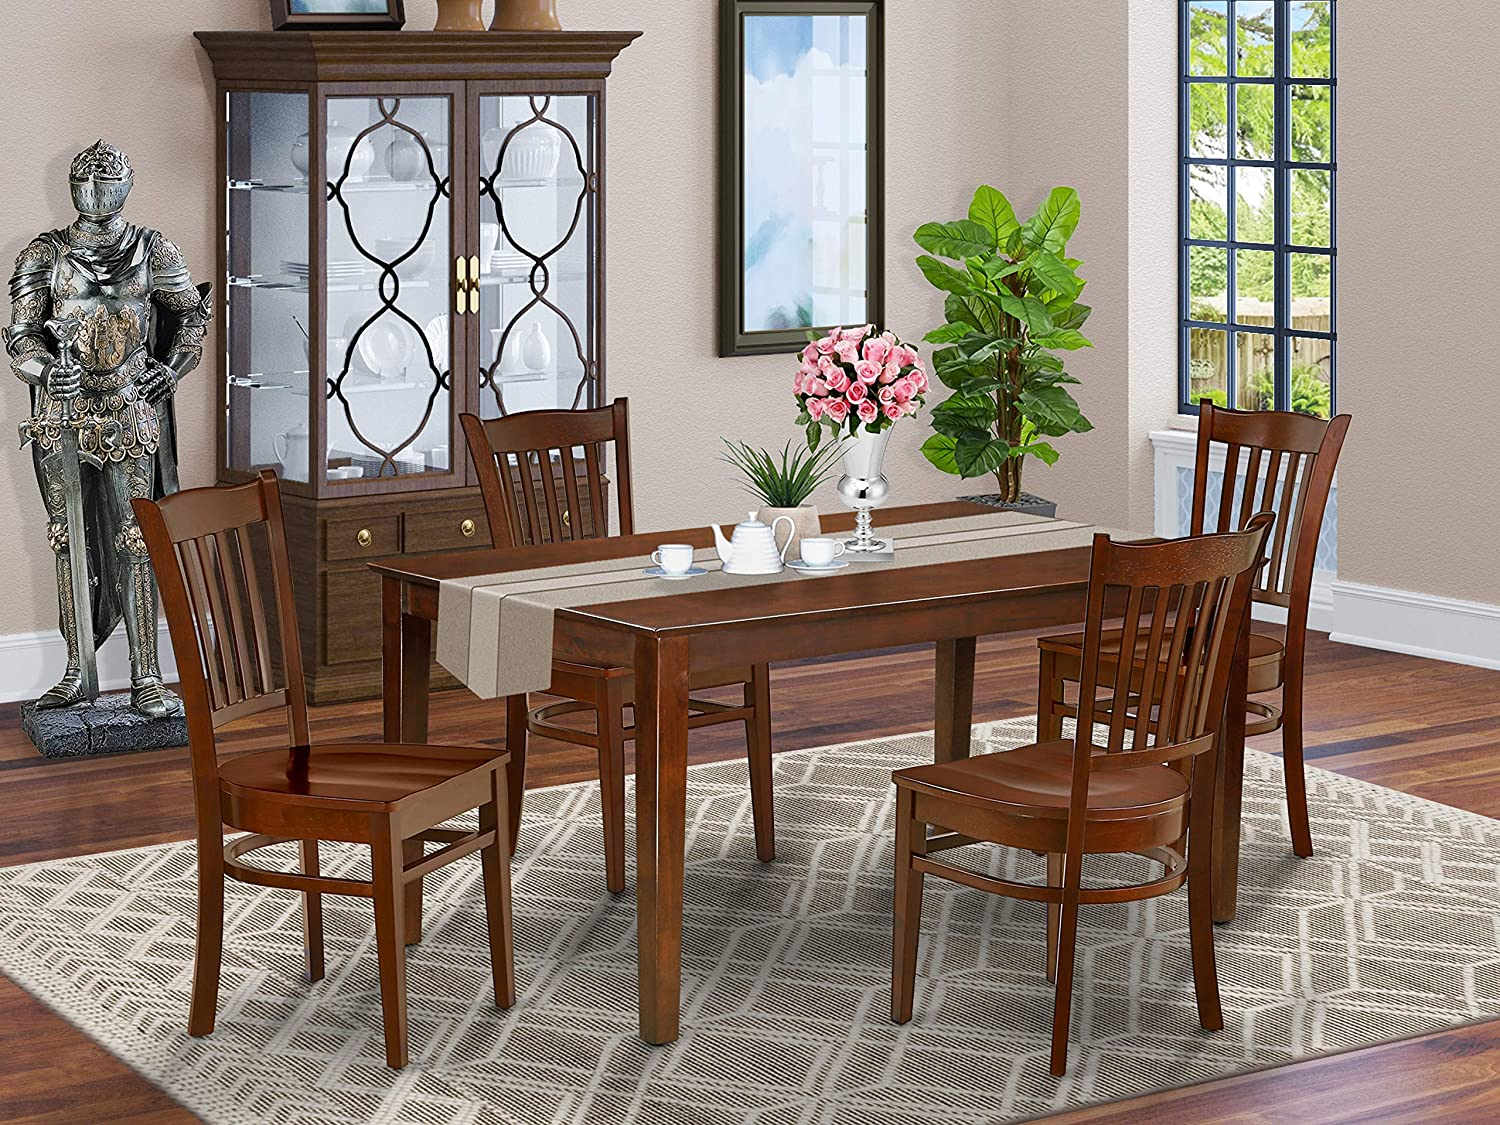 East West Furniture Washington excellence Mall Rectangular Dining Table Pc D Set 5 Wooden -